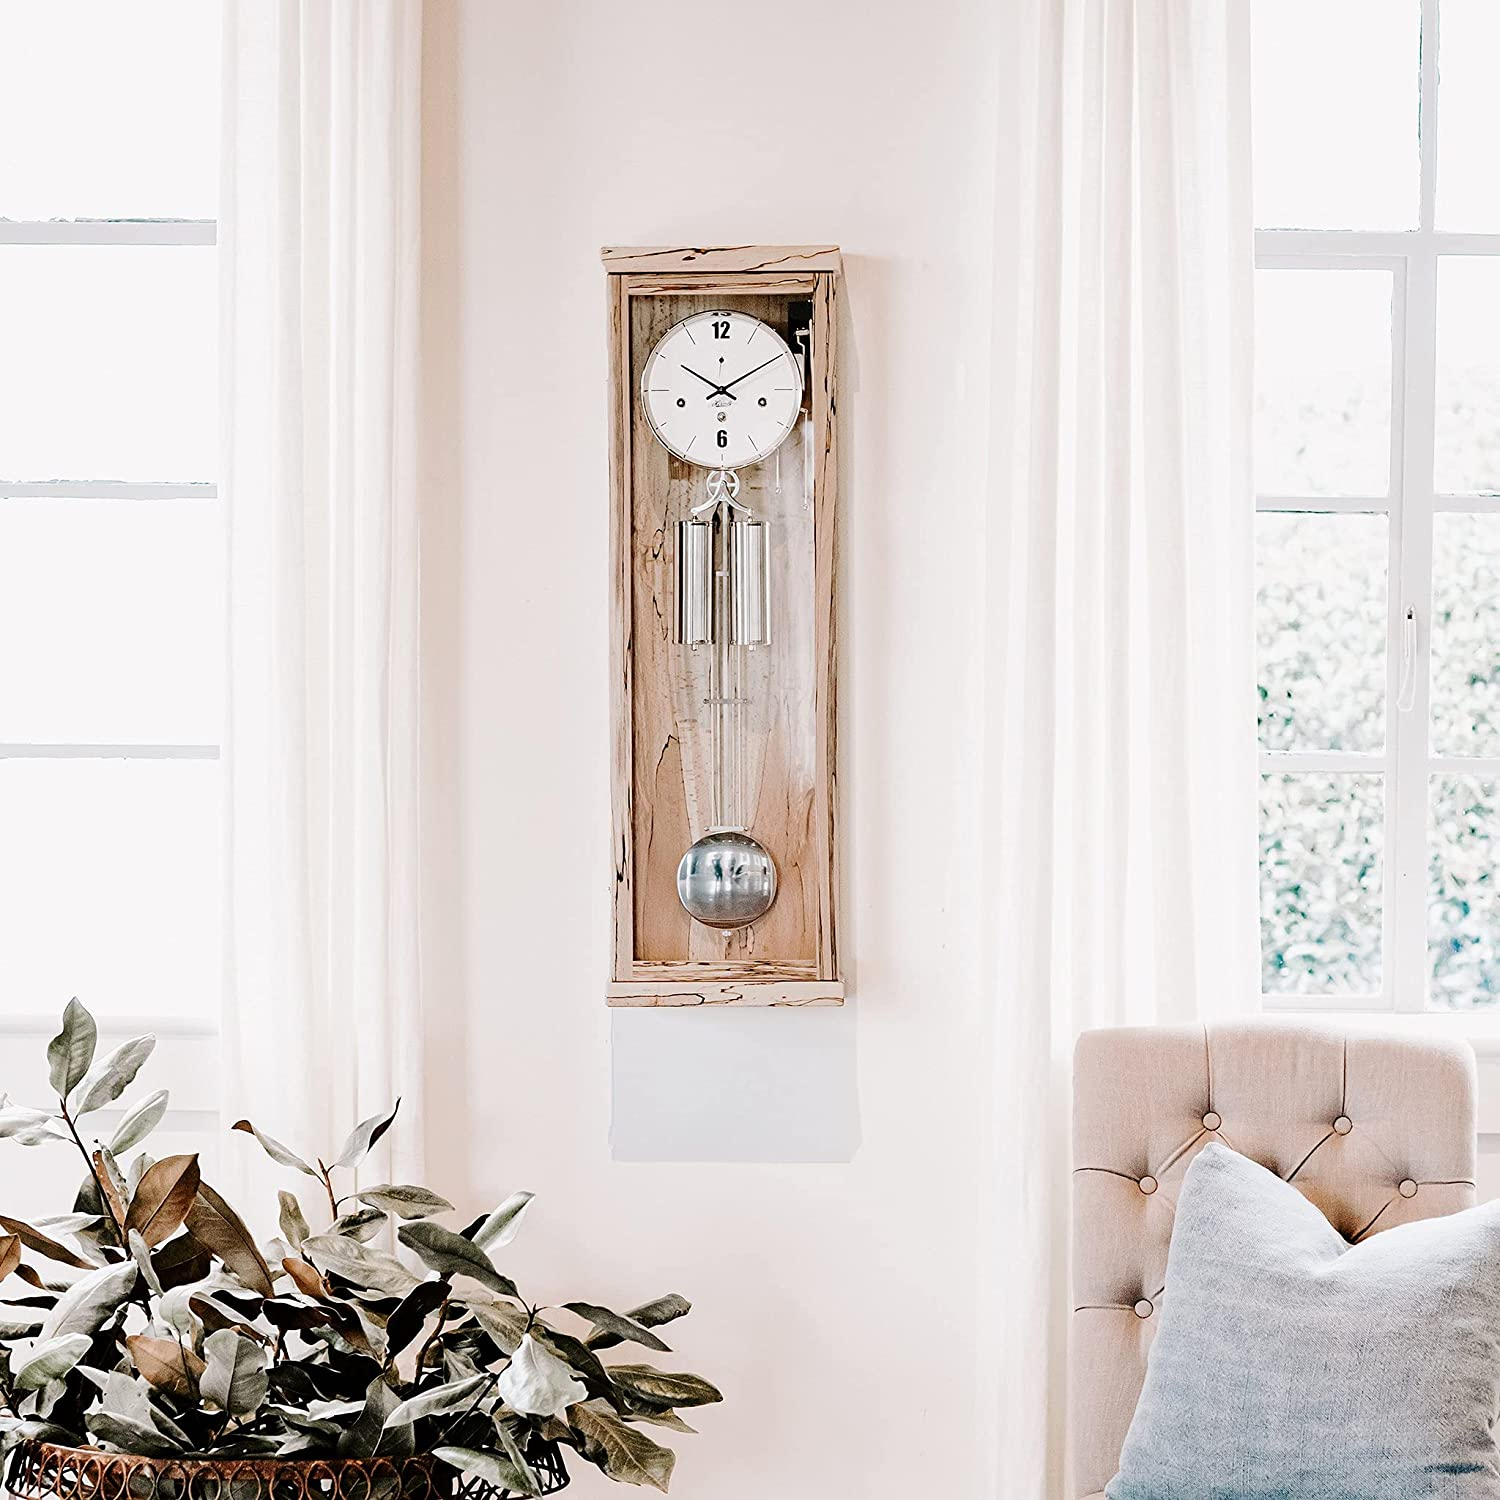 Hermle Max 90% OFF Abbot Contemporary Wall Clock in Finish Beech Free Shipping New Ice